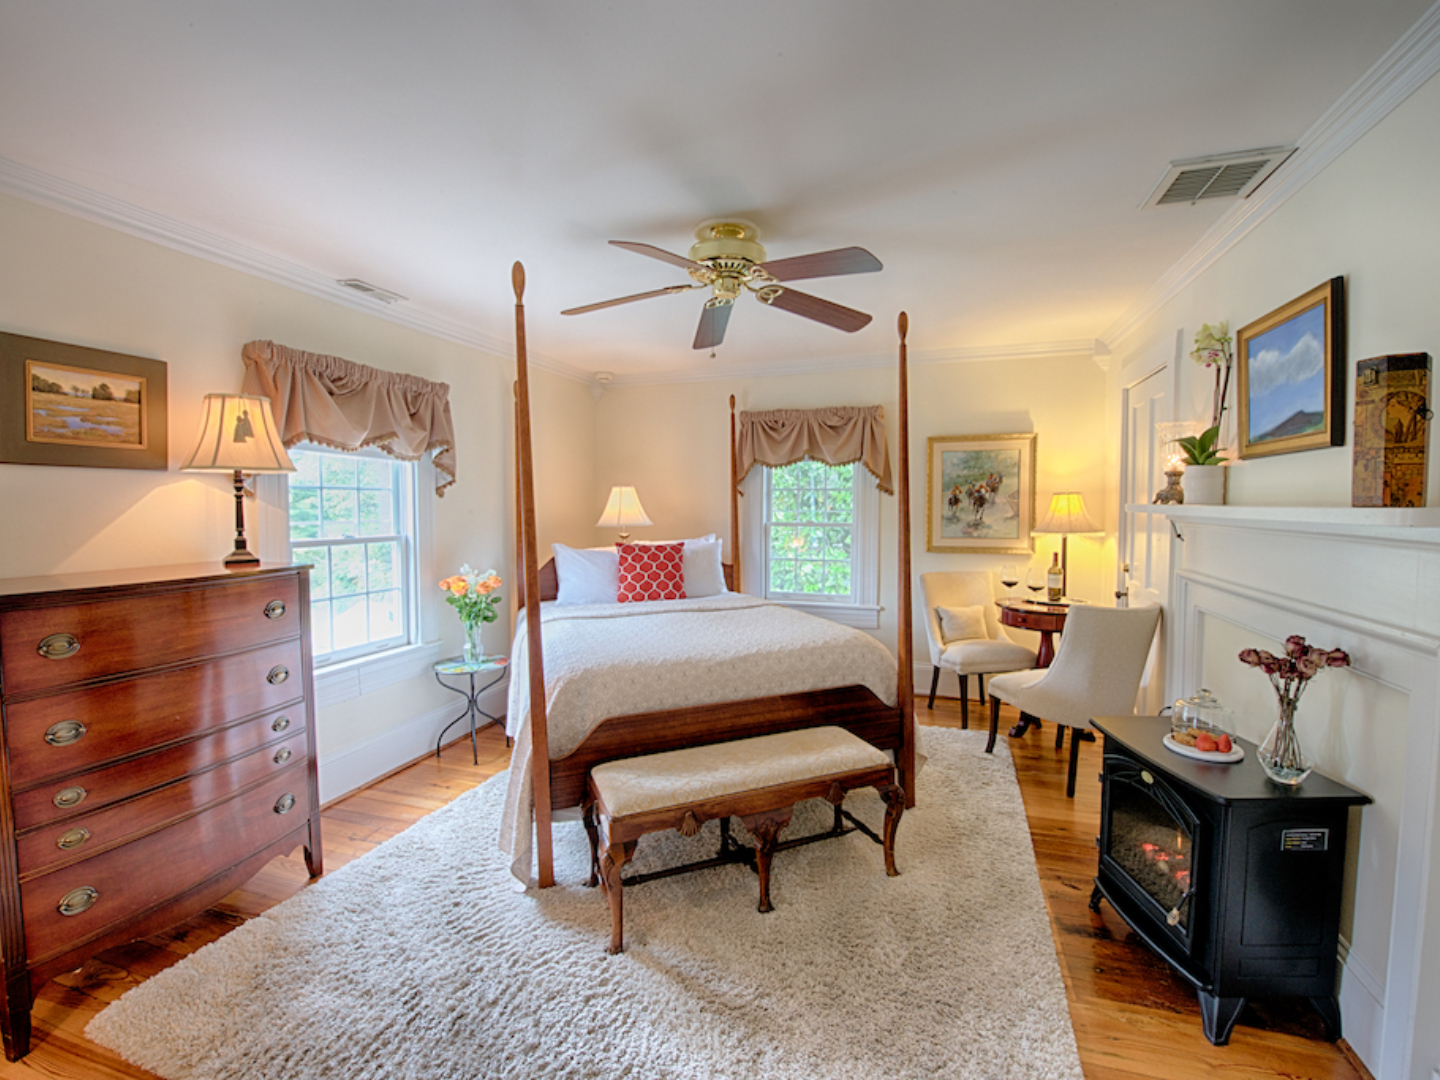 A bedroom with a bed and a chair in a room at Foster Harris House.